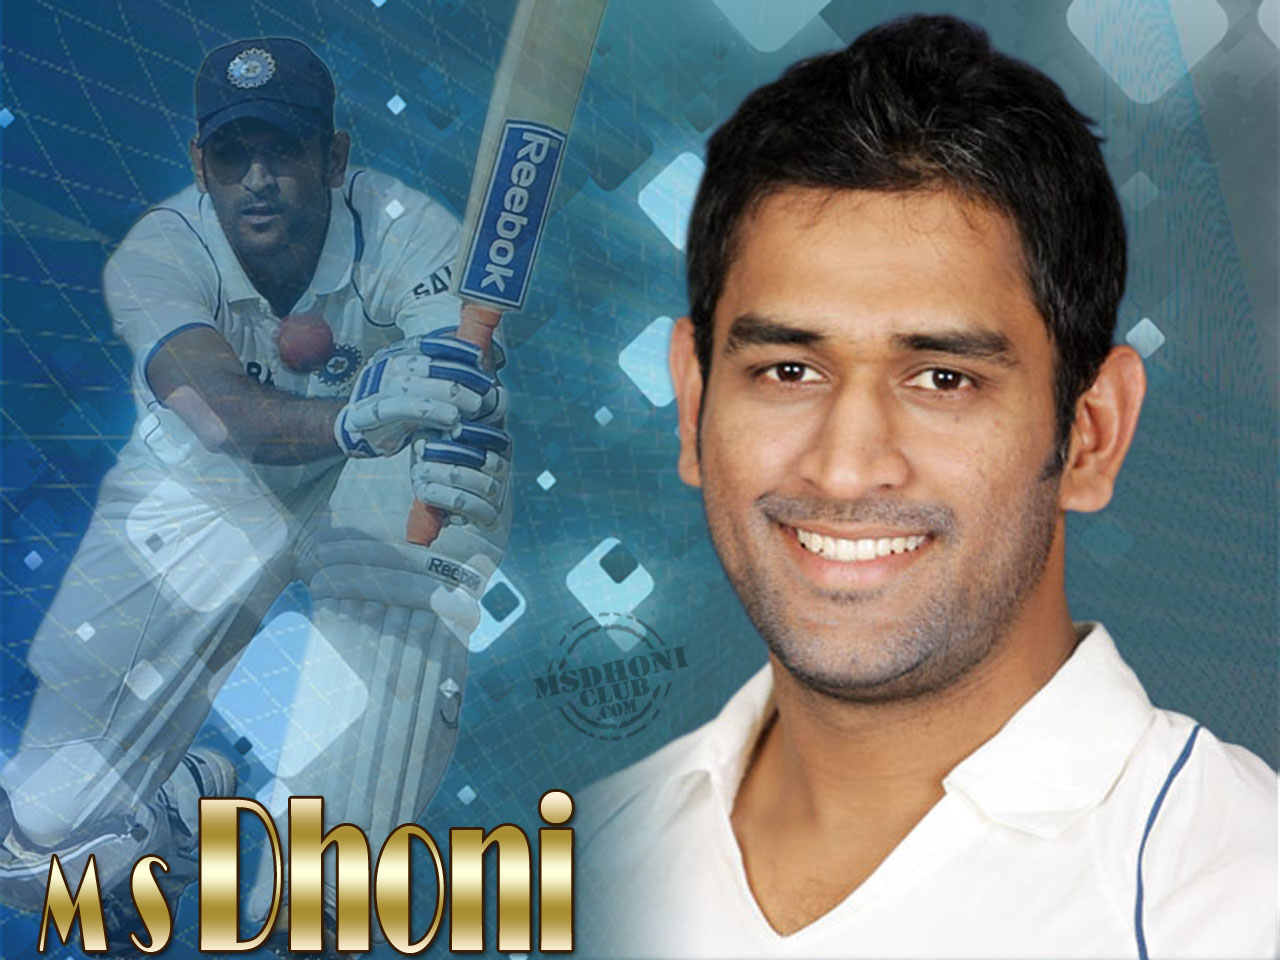 Ms Dhoni Hd Wallpapers Csk: Pic New Posts: Csk Wallpapers For Mobile